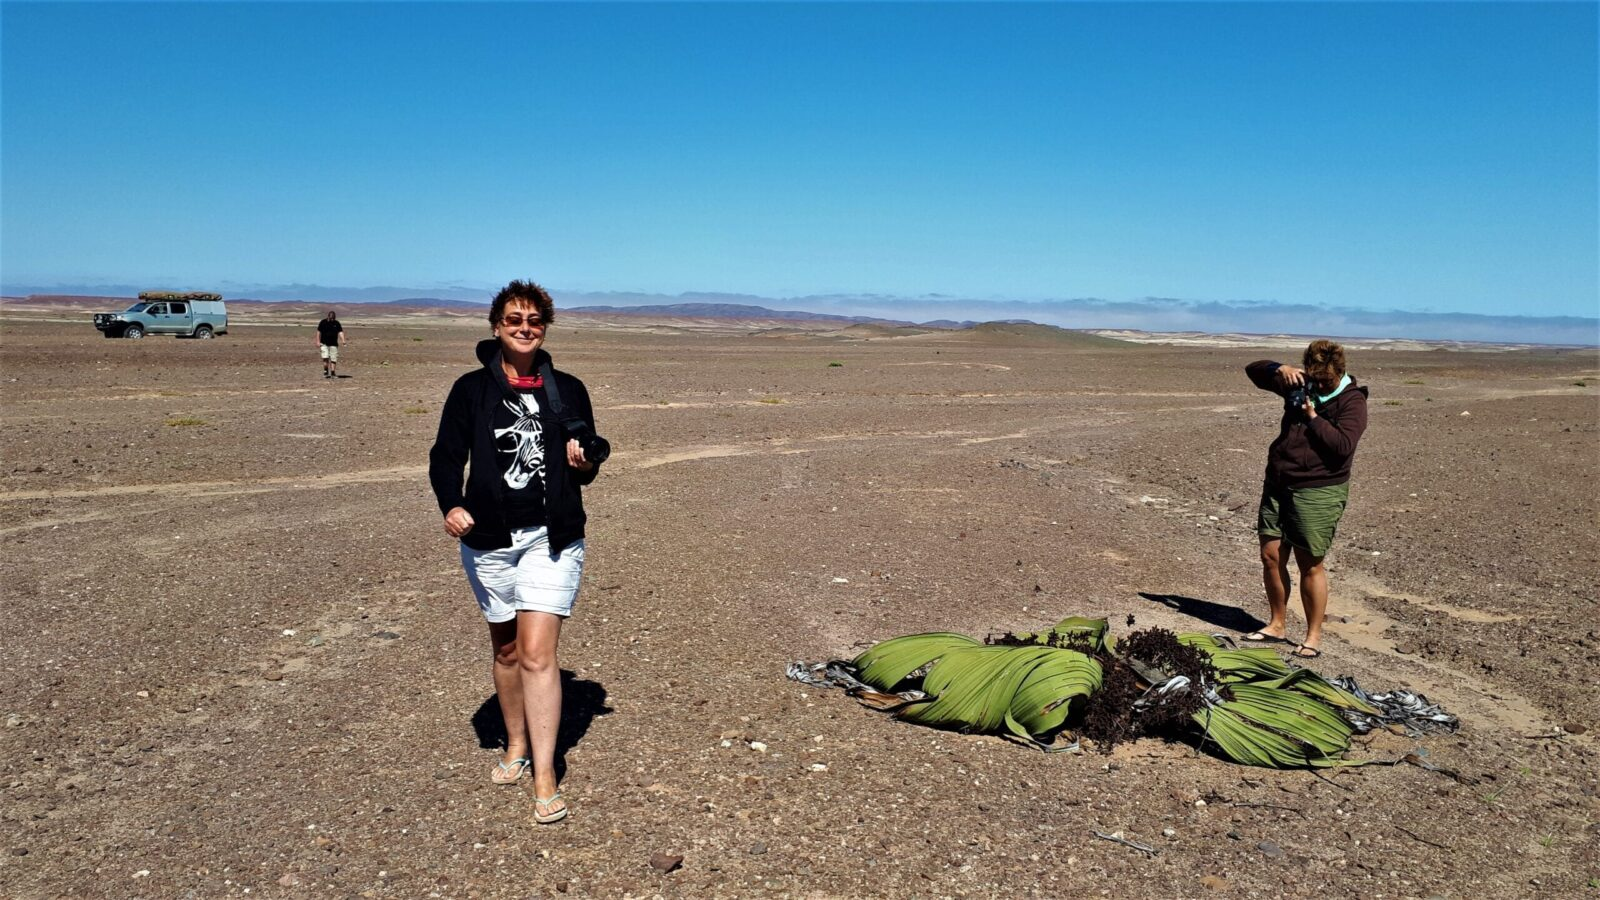 You cherish of the beaten track experiences at Tales from Africa Travel